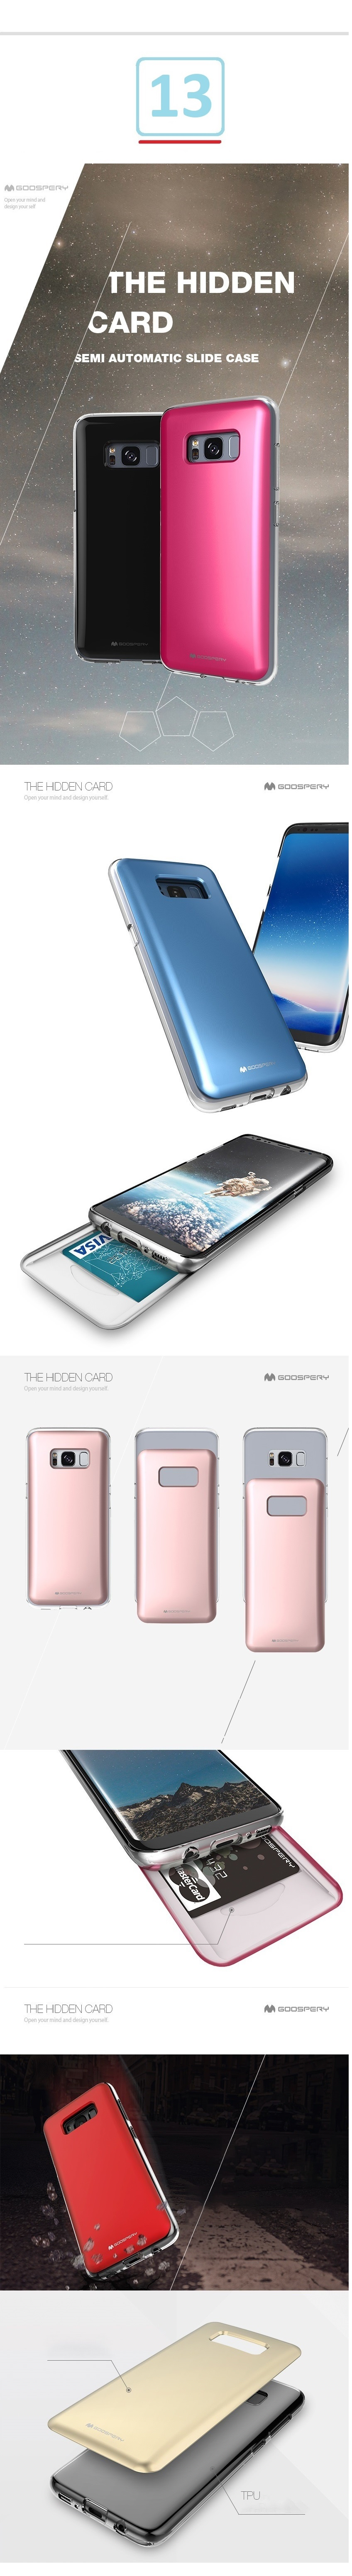 Every Need Want Day Goospery Iphone 8 Sky Slide Bumper Case Hotpink Note This Does Not Cover The Power And Volume Button Areas Just Like Colored Pearl Jelly Cases